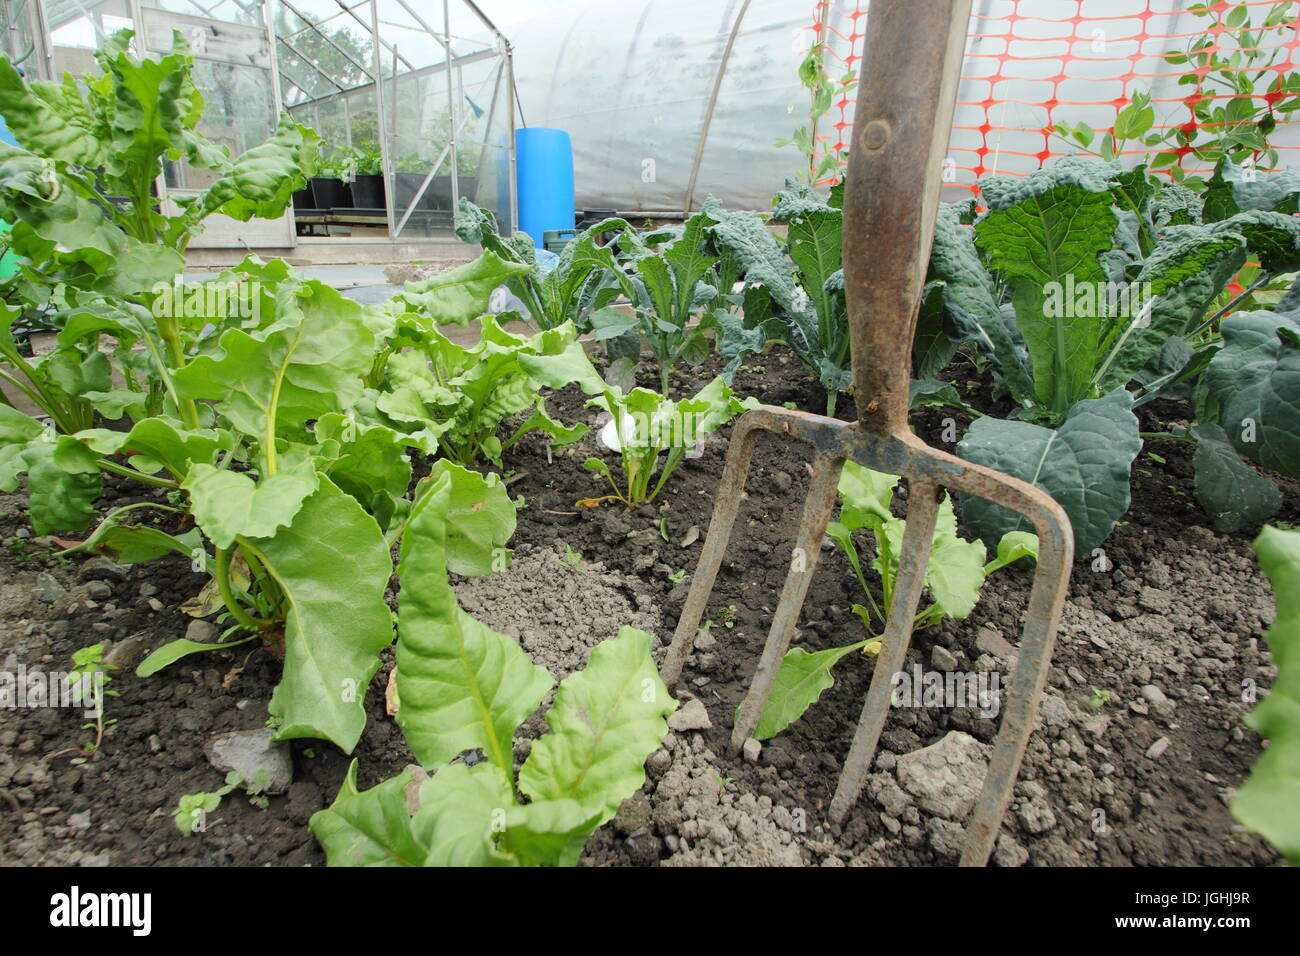 Young beetroot and brassica growing in a vegetable plot  in an English allotment garden at mid summer - Stock Image